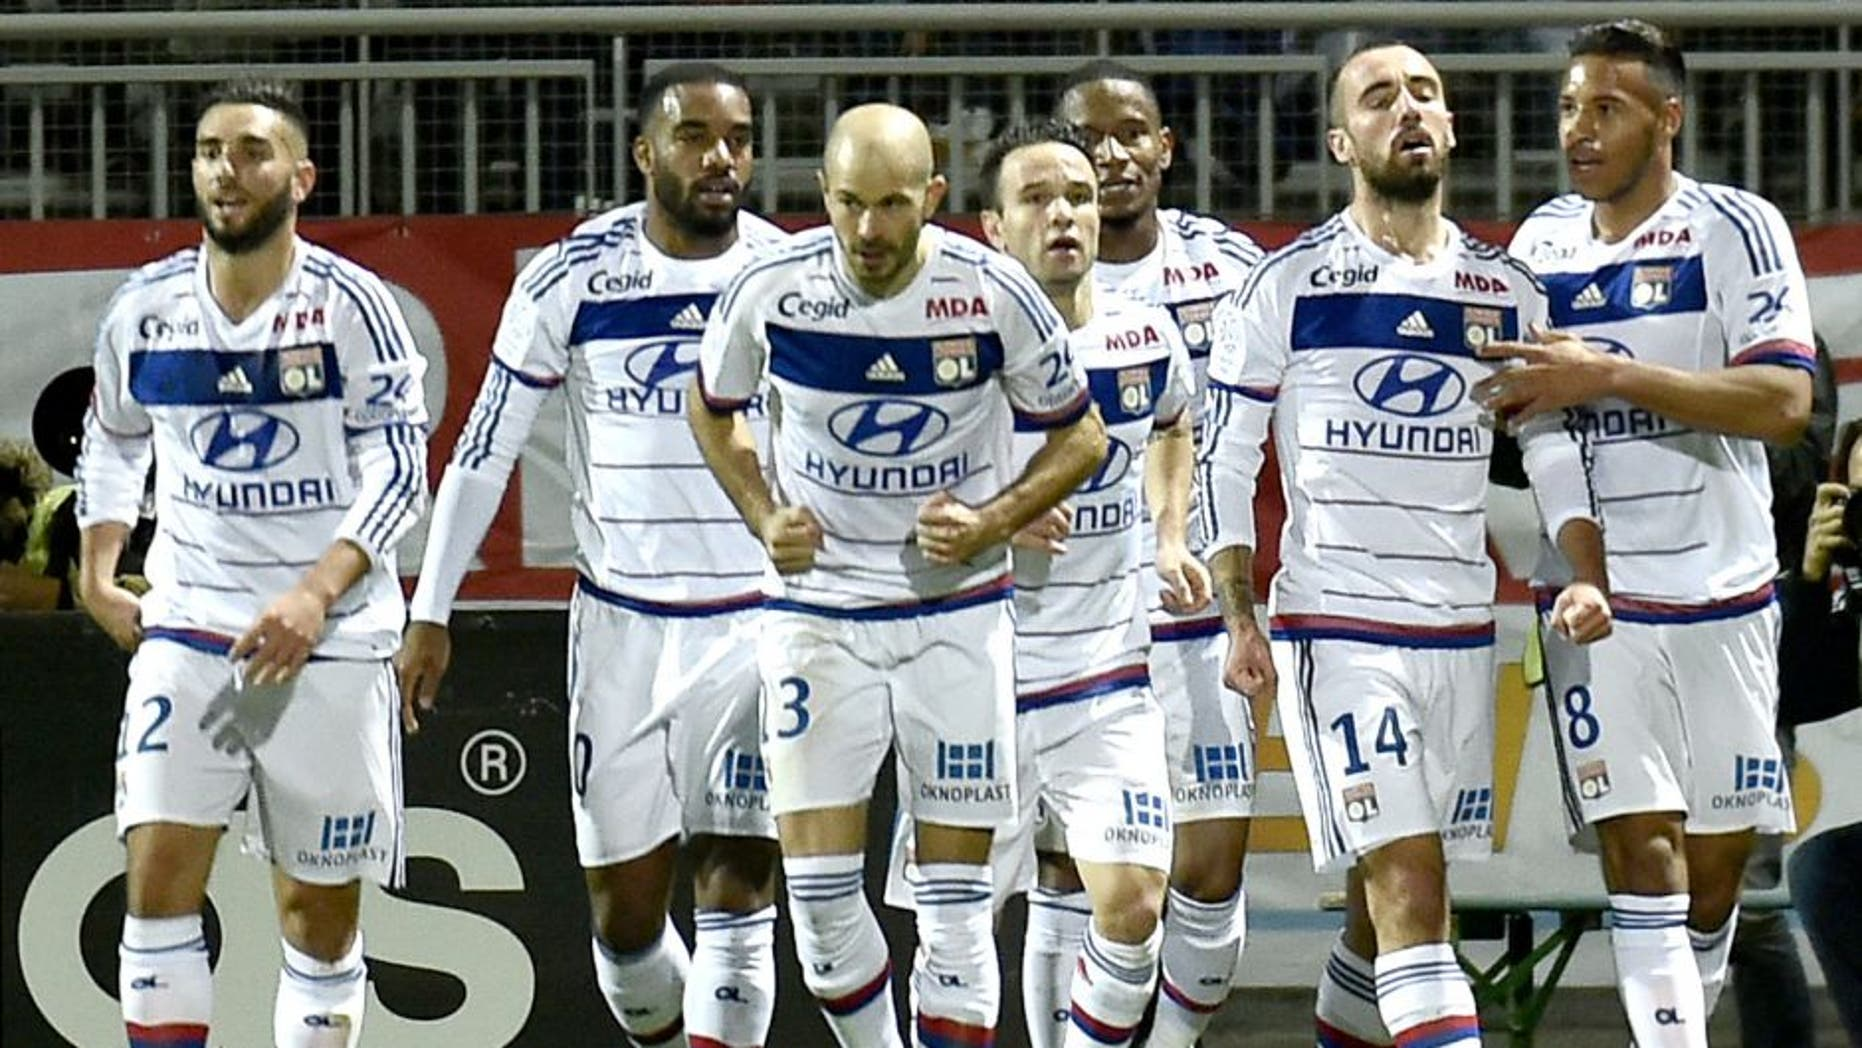 Lyon's Spanish midfielder Sergi Darder (2nd R) celebrates after scoring a goal during the French L1 football match Olympique Lyonnais (OL) vs Toulouse (TFC) on October 23, 2015, at the Gerland Stadium in Lyon, central-eastern France. AFP PHOTO / JEFF PACHOUD (Photo credit should read JEFF PACHOUD/AFP/Getty Images)